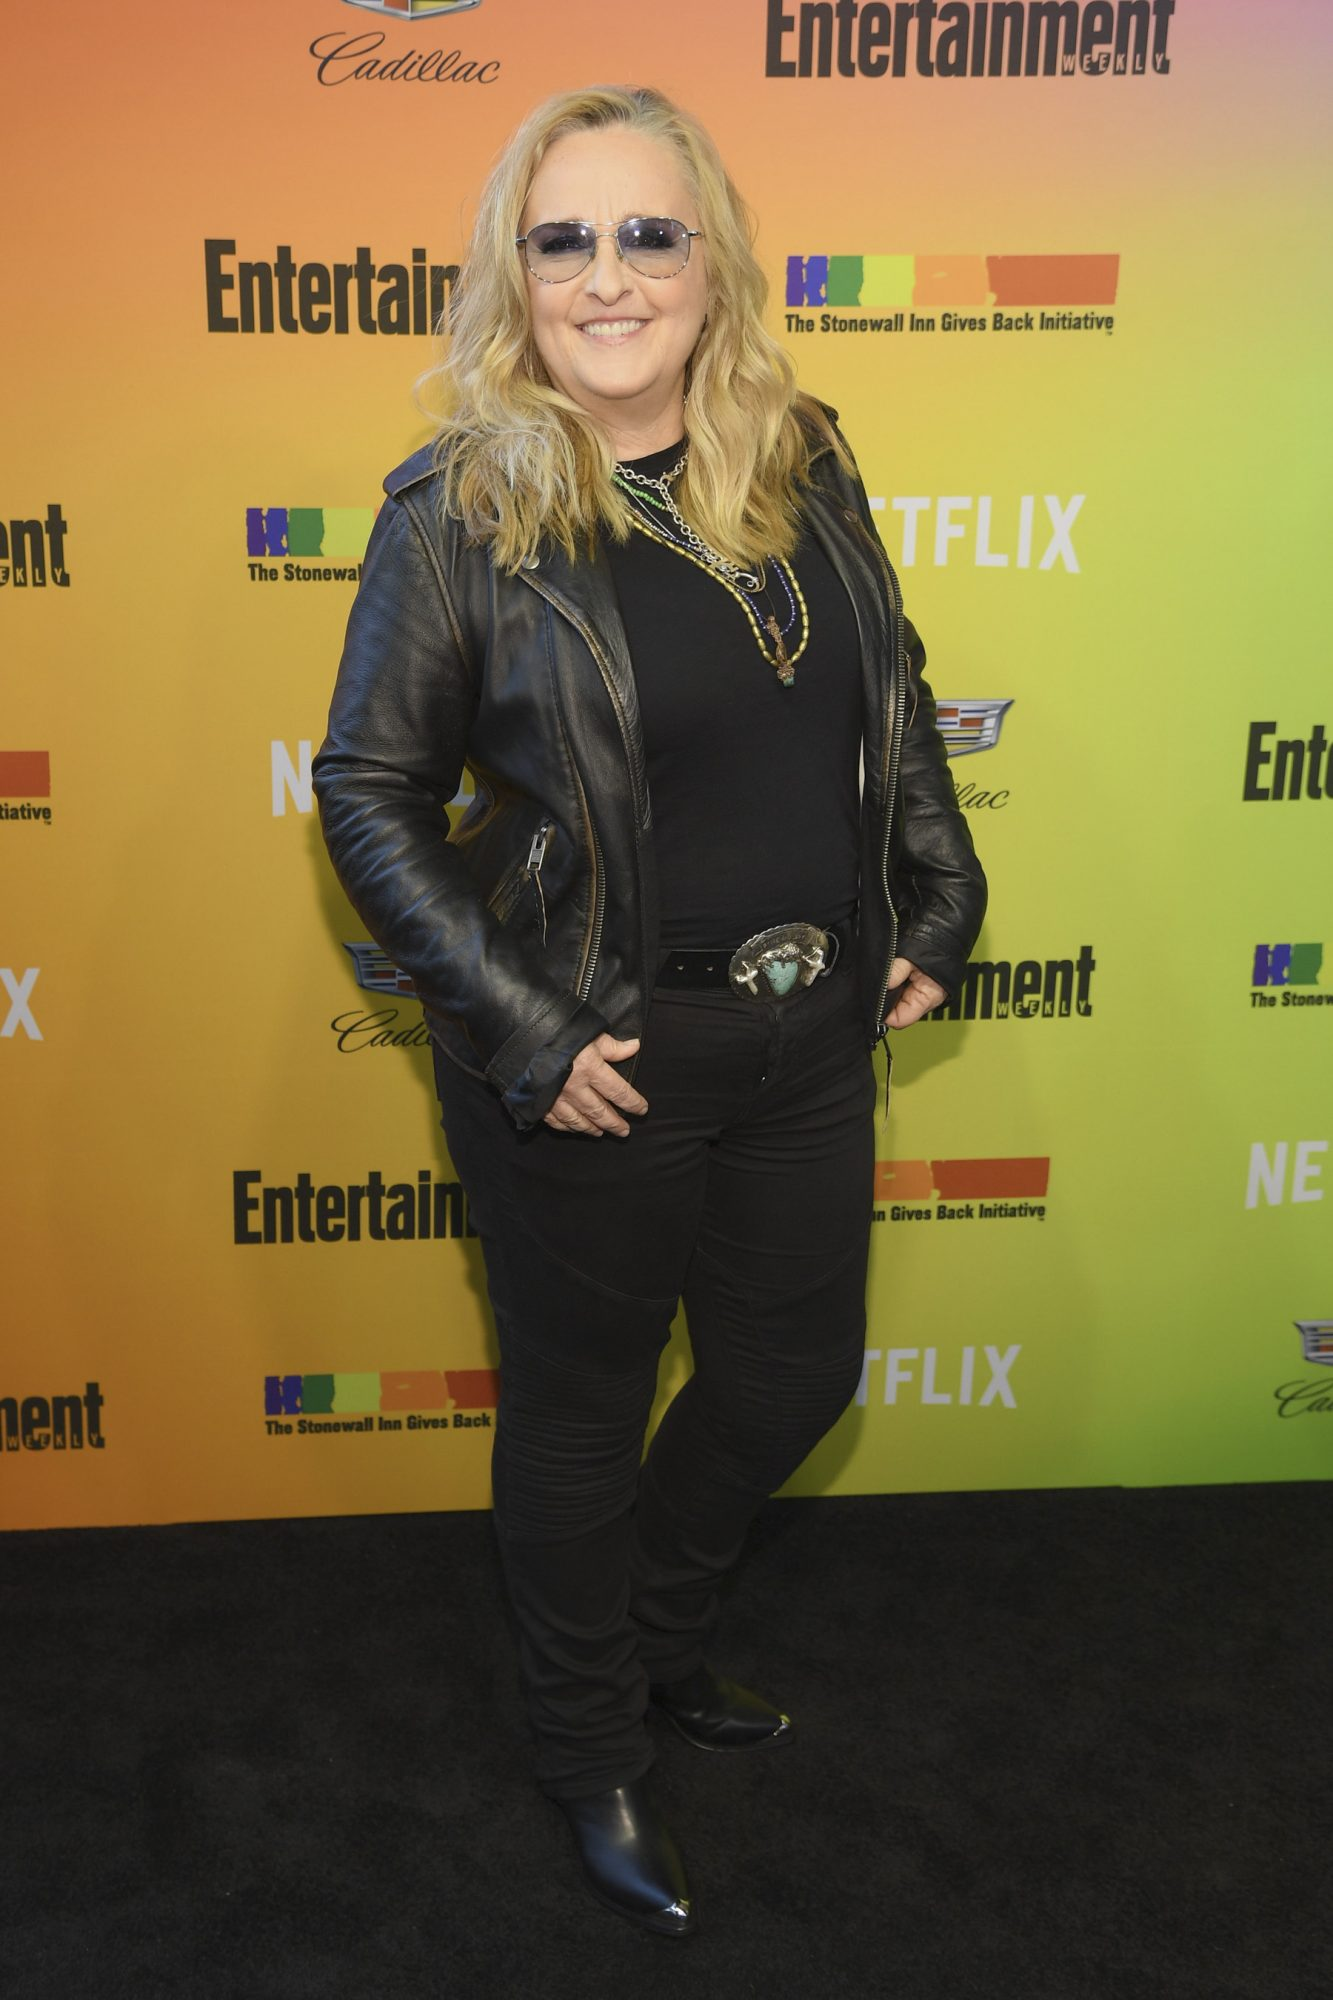 NEW YORK, NEW YORK - JUNE 05: Melissa Etheridge attends as Entertainment Weekly Celebrates Its Annual LGBTQ Issue at the Stonewall Inn on June 05, 2019 in New York City. (Photo by Dimitrios Kambouris/Getty Images for Entertainment Weekly)